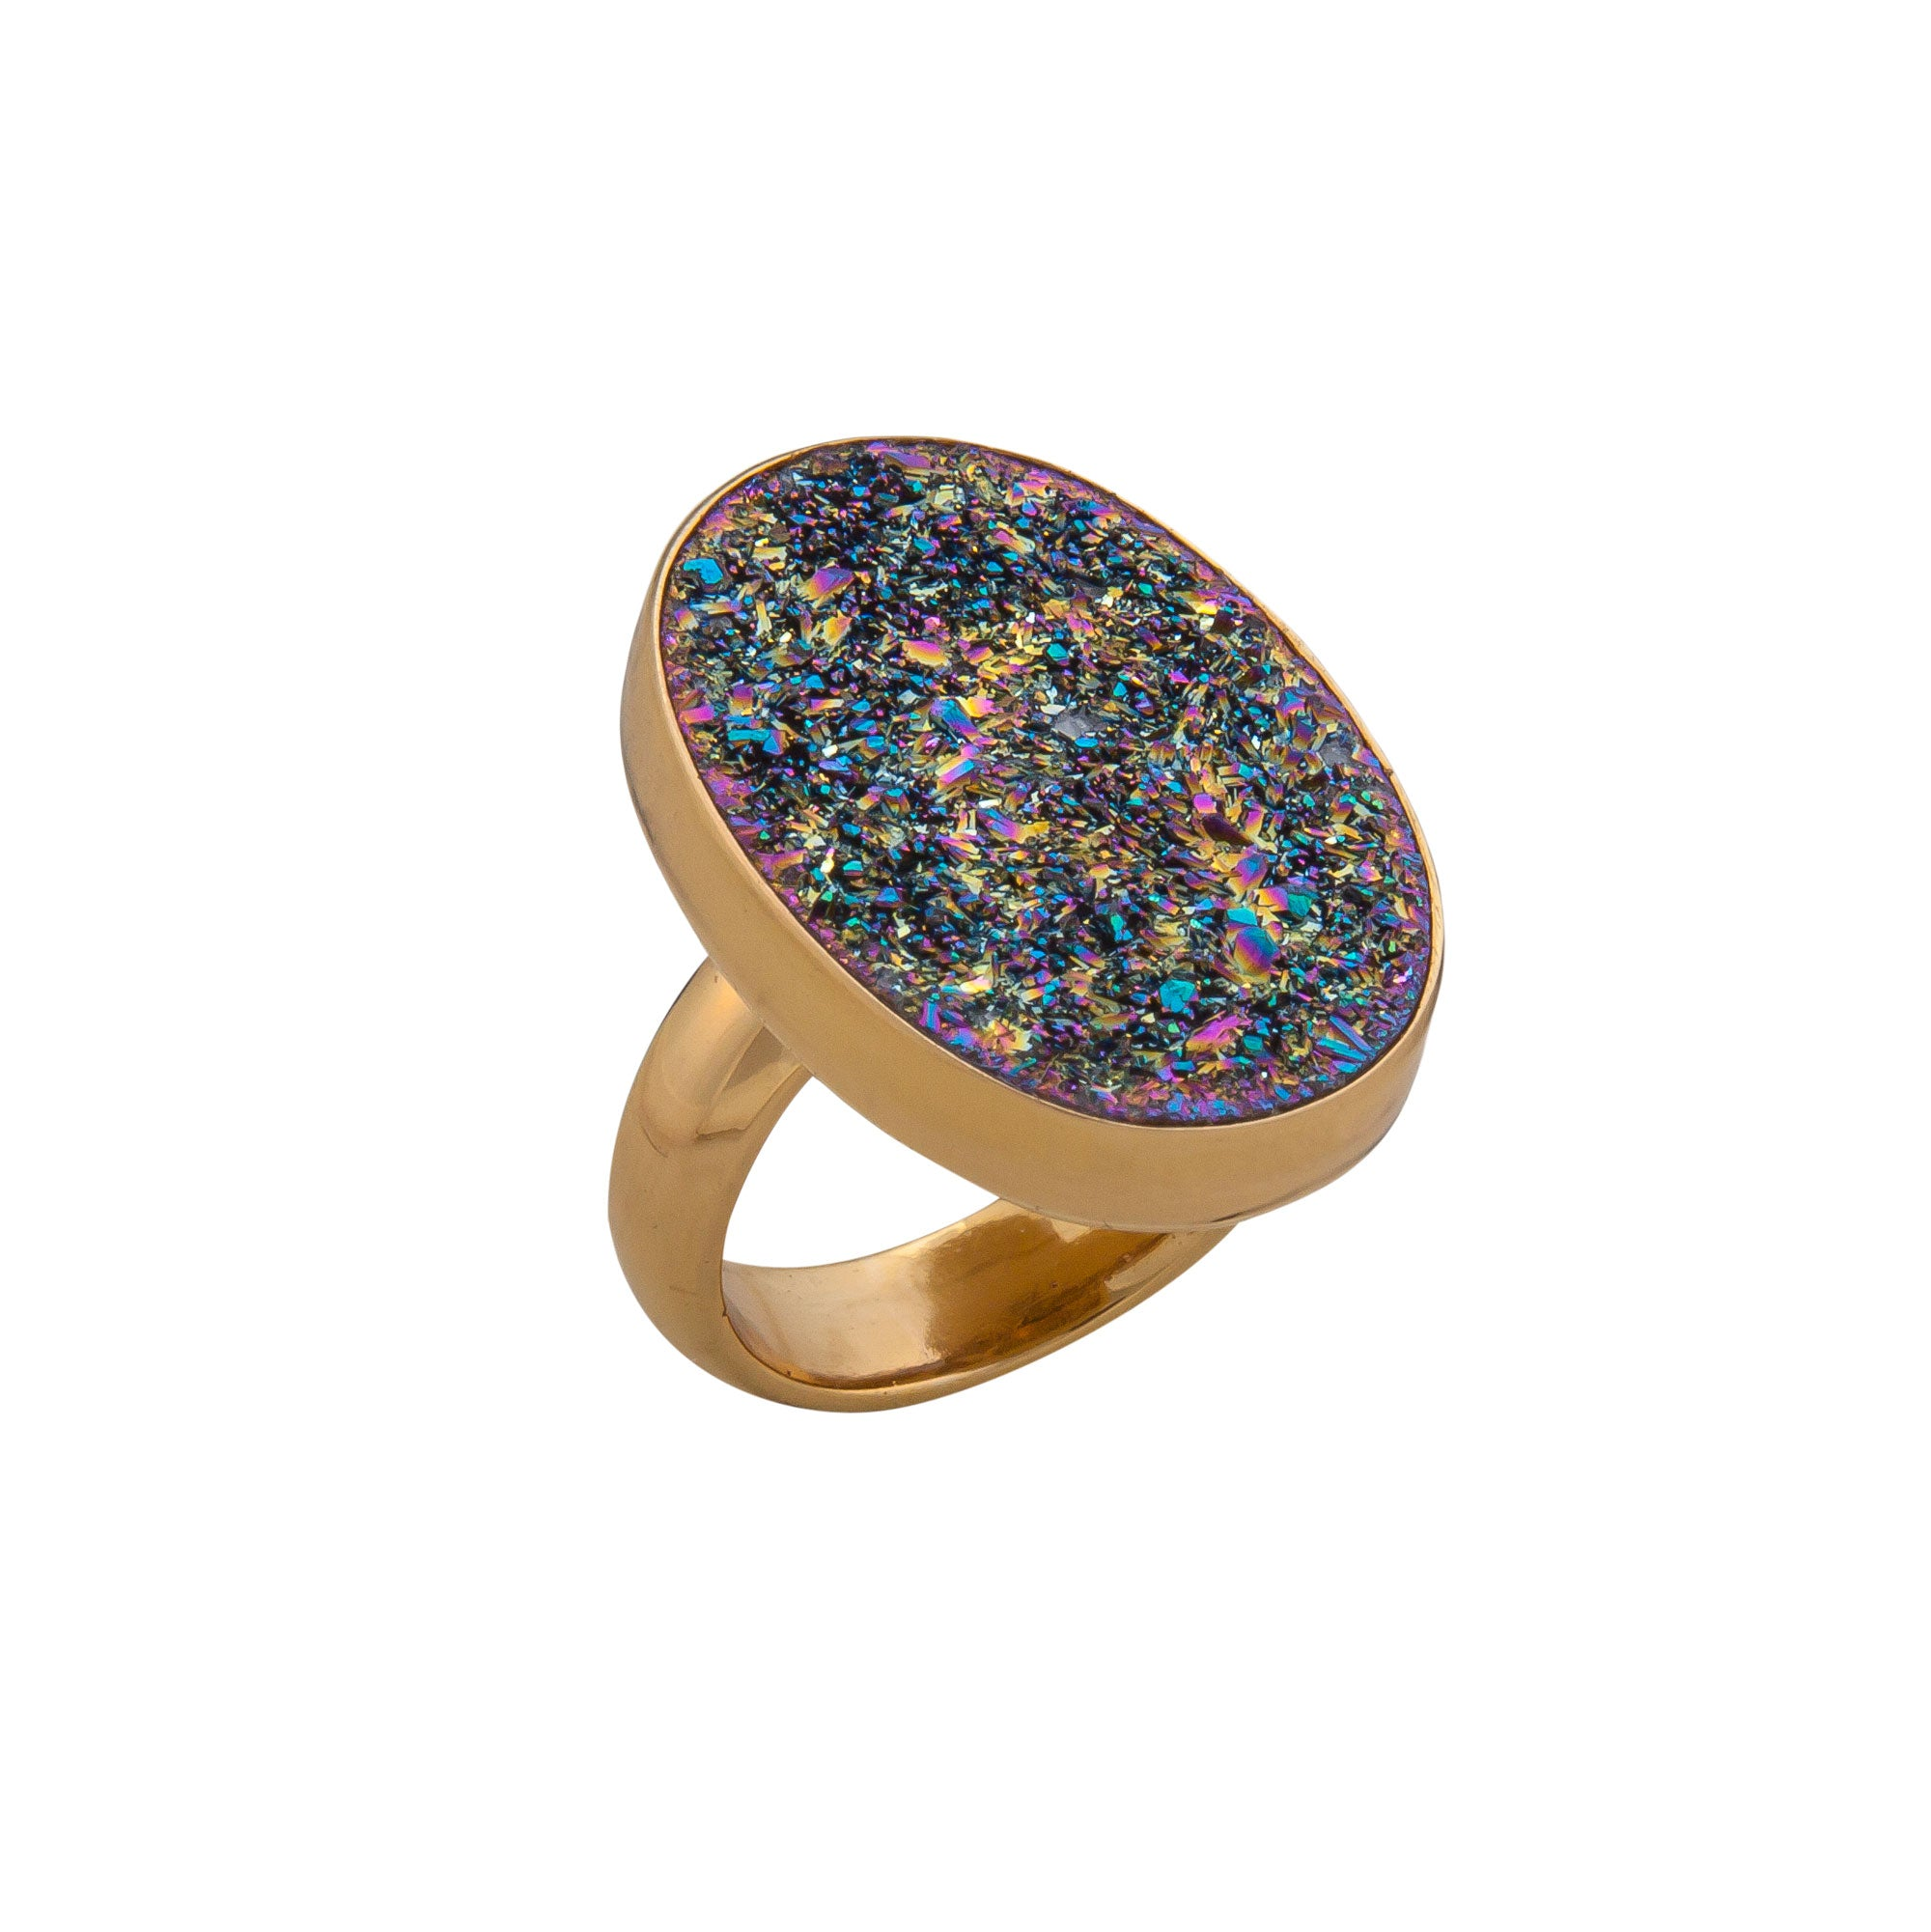 Alchemia Titanium Druse Oval Adjustable Ring | Charles Albert Jewelry